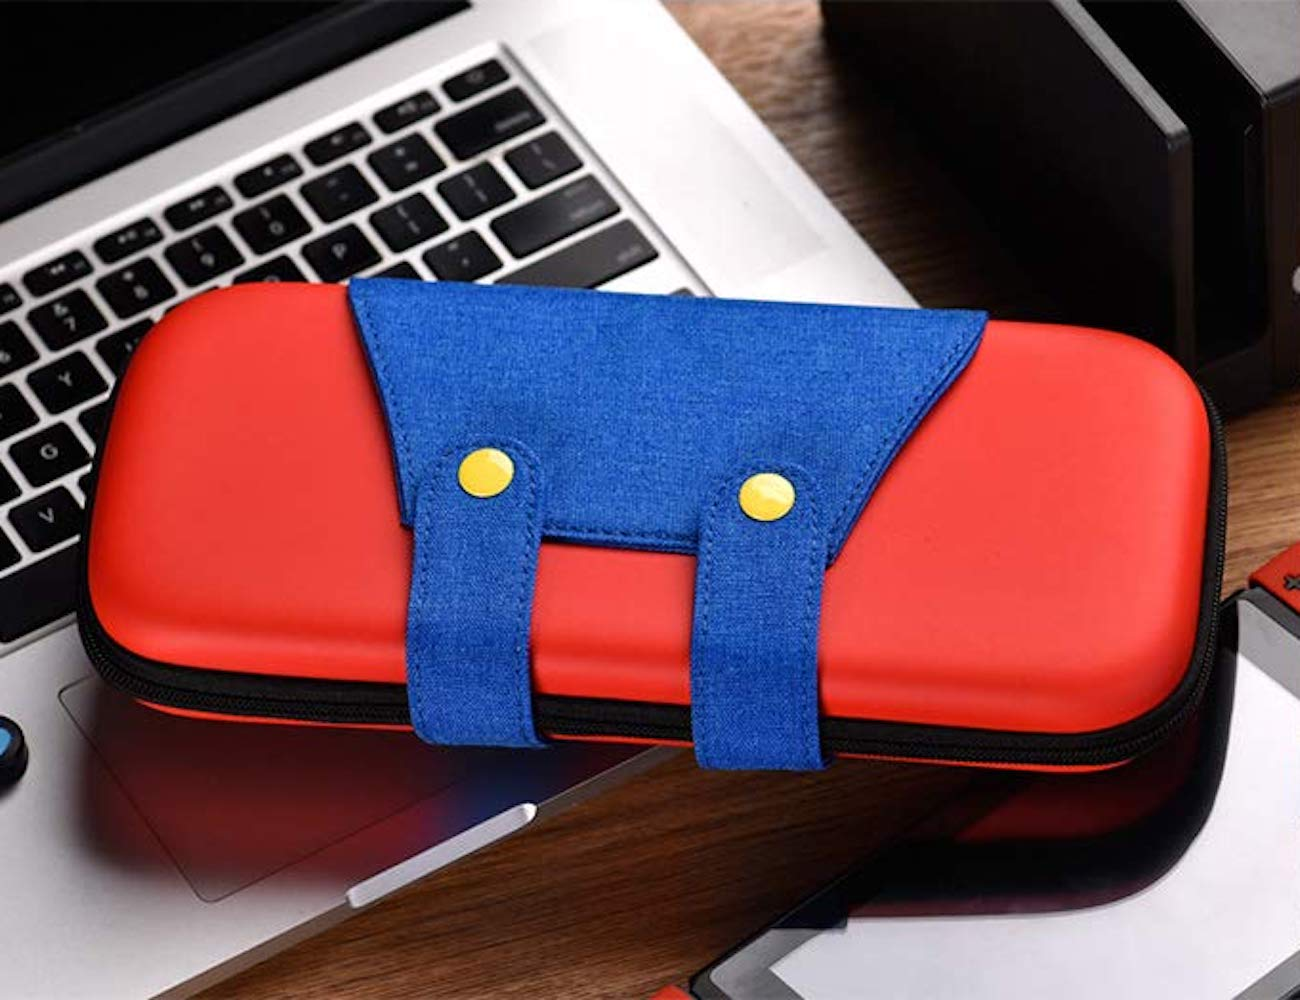 Nintendo Switch Case is designed to look like it's a character in a game